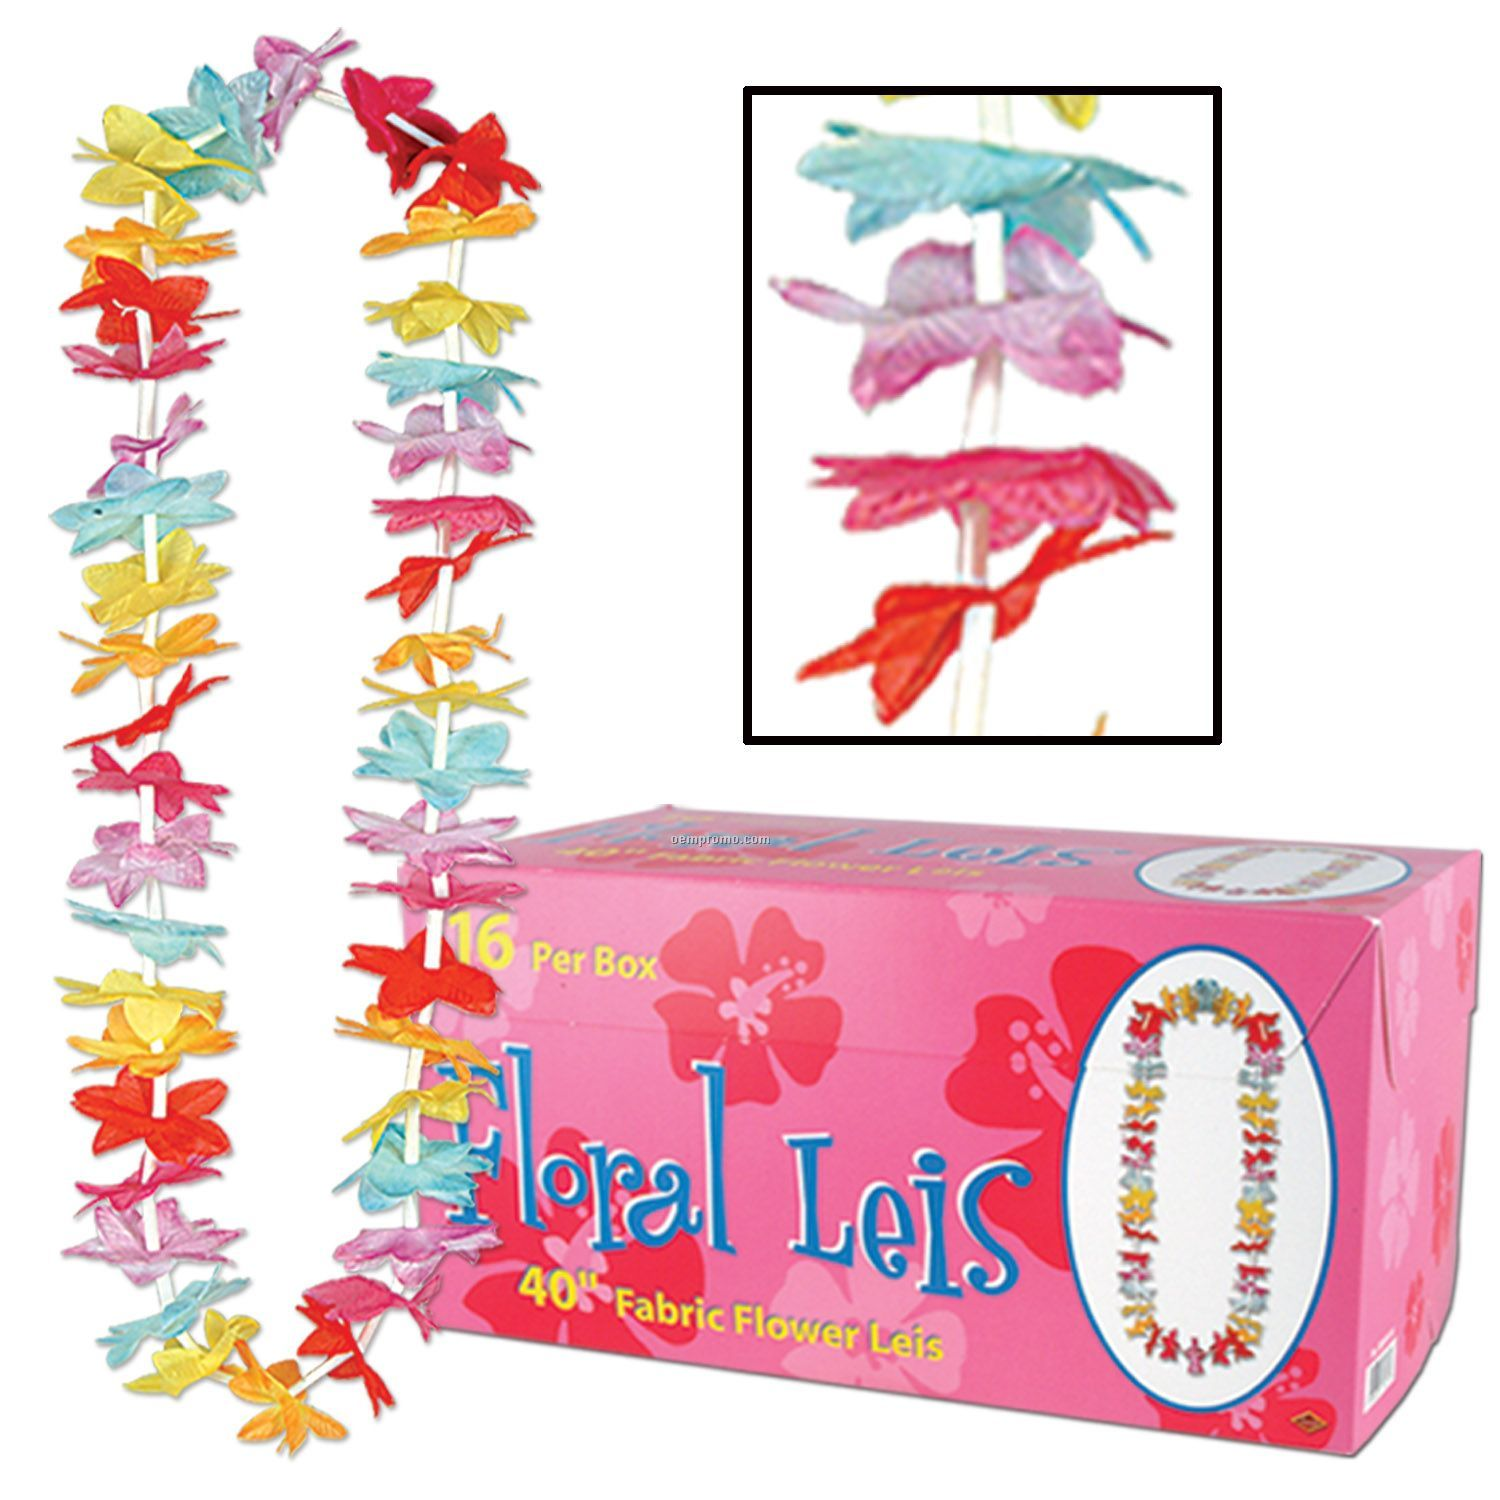 Multi Color Floral Leis W/ 16 Count Case Box